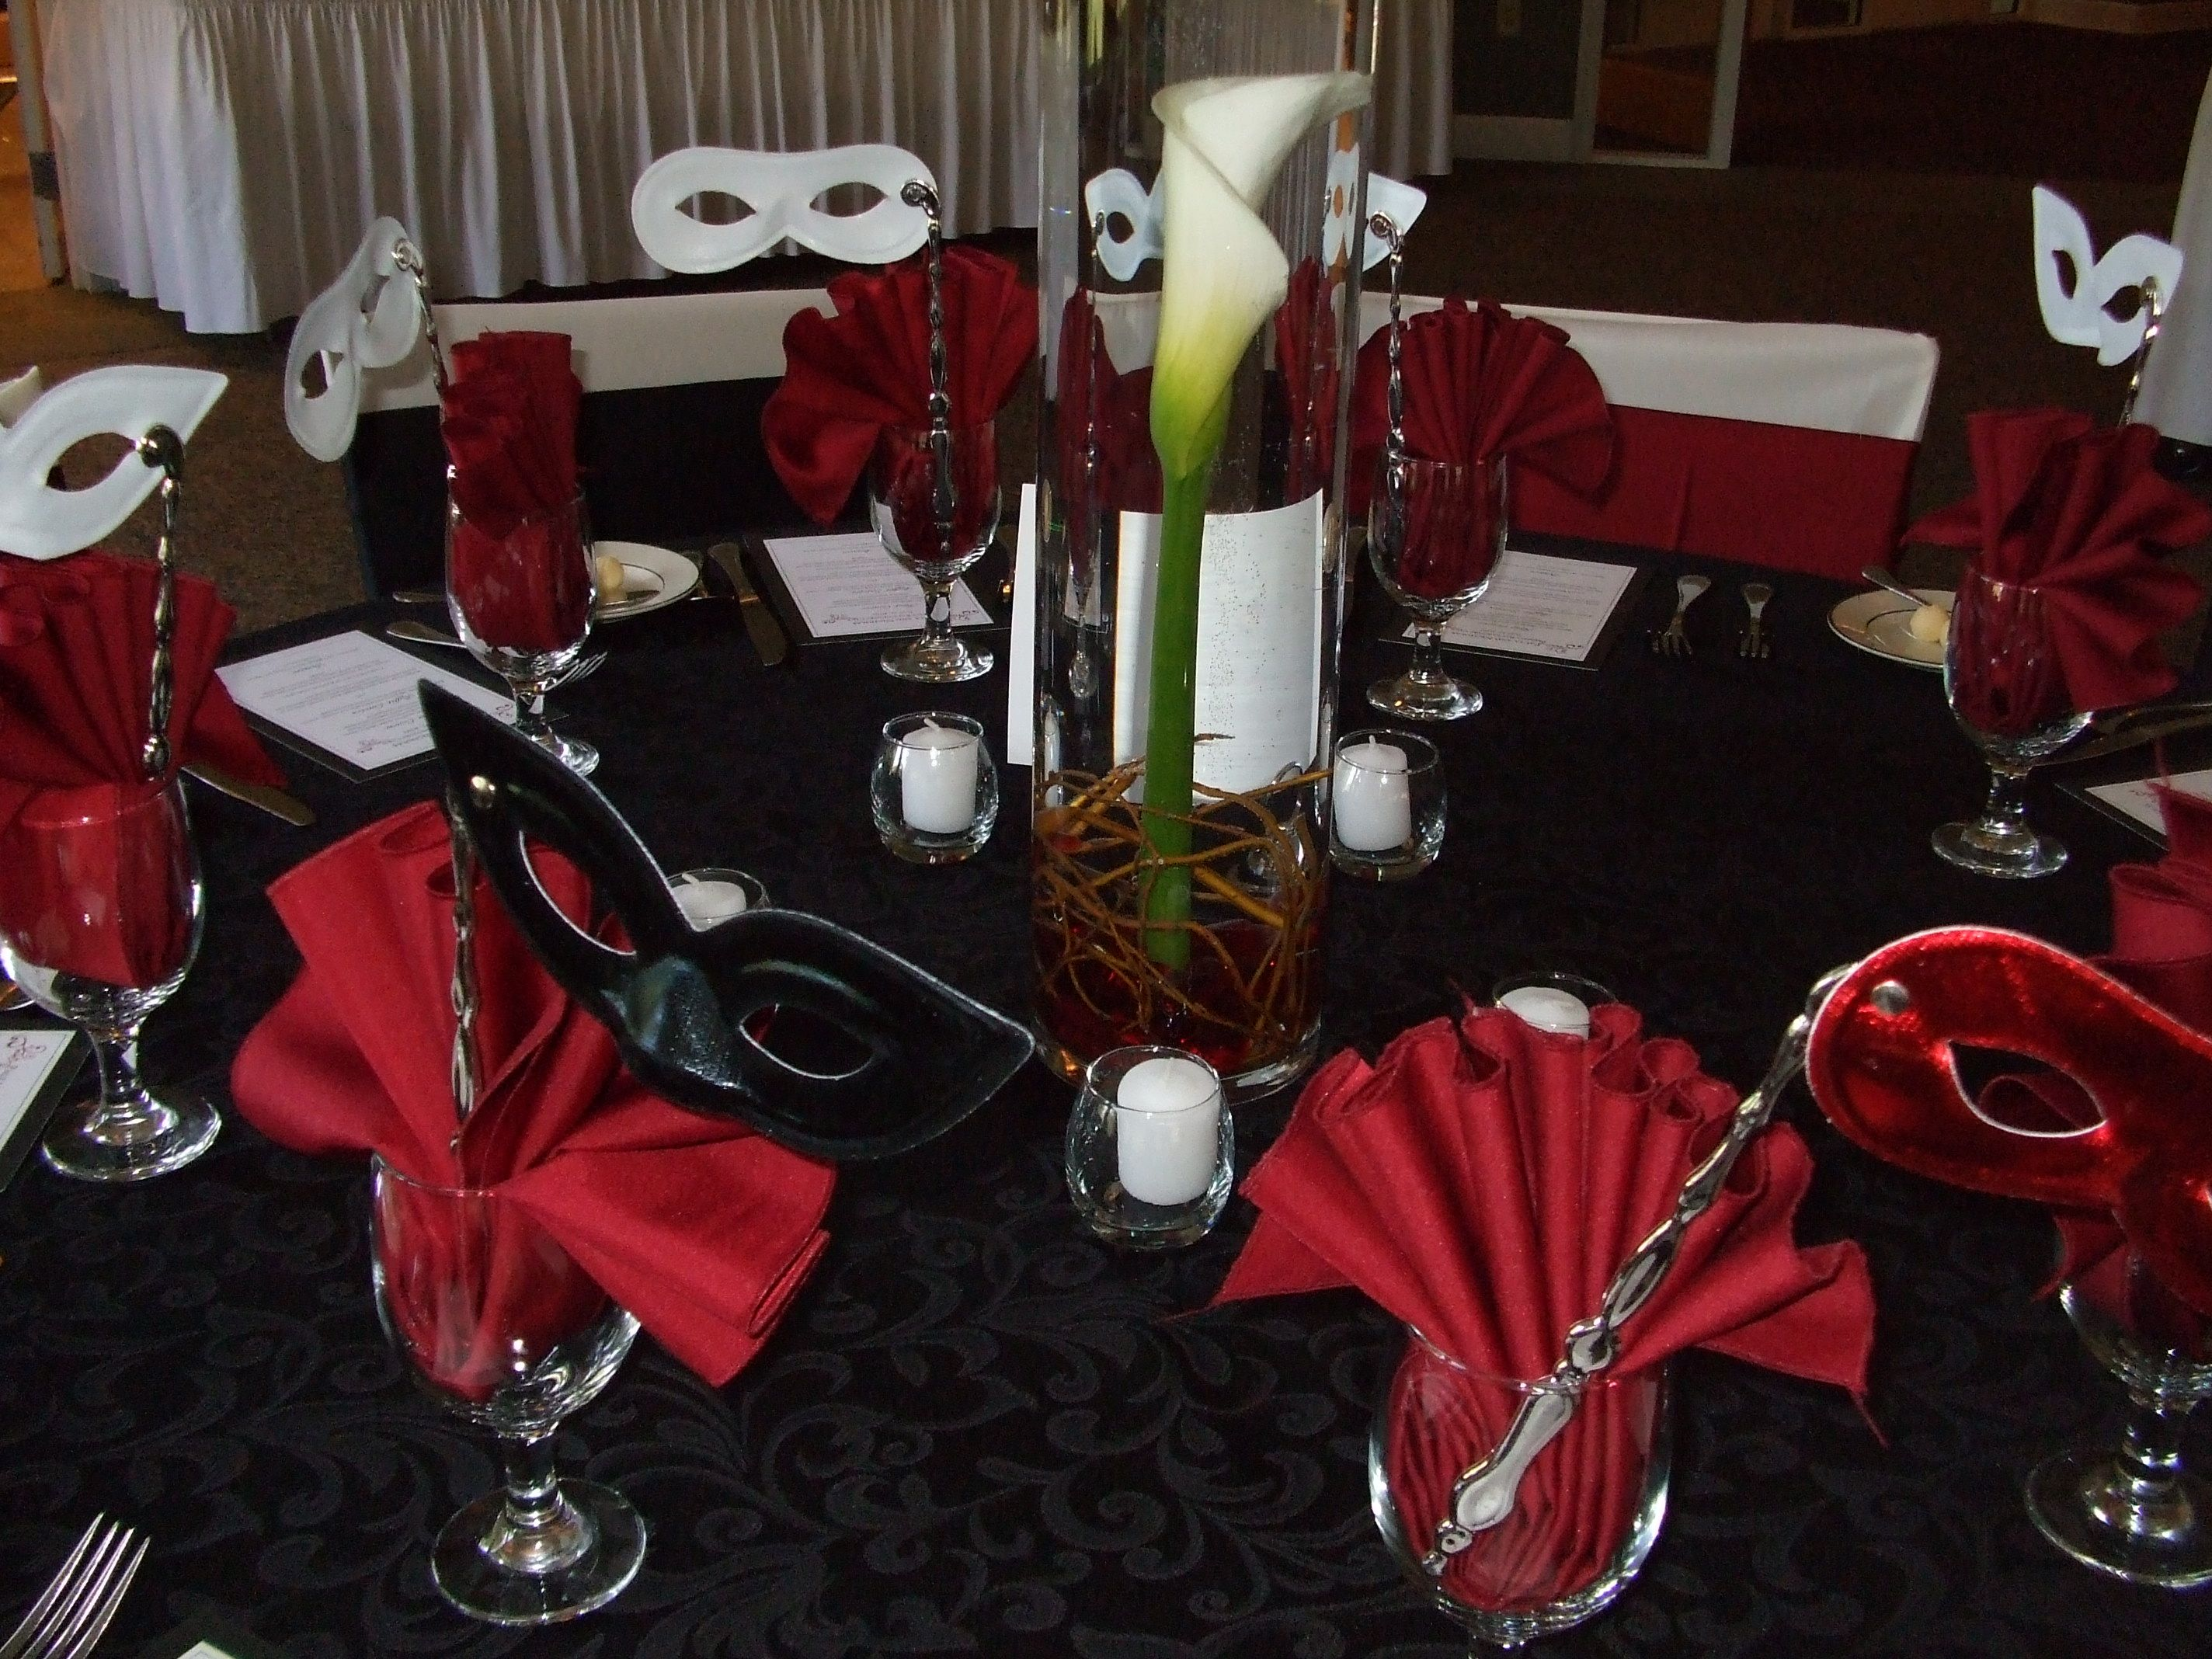 A Calla Lily stands out as the centerpiece of the table at this red and black reception